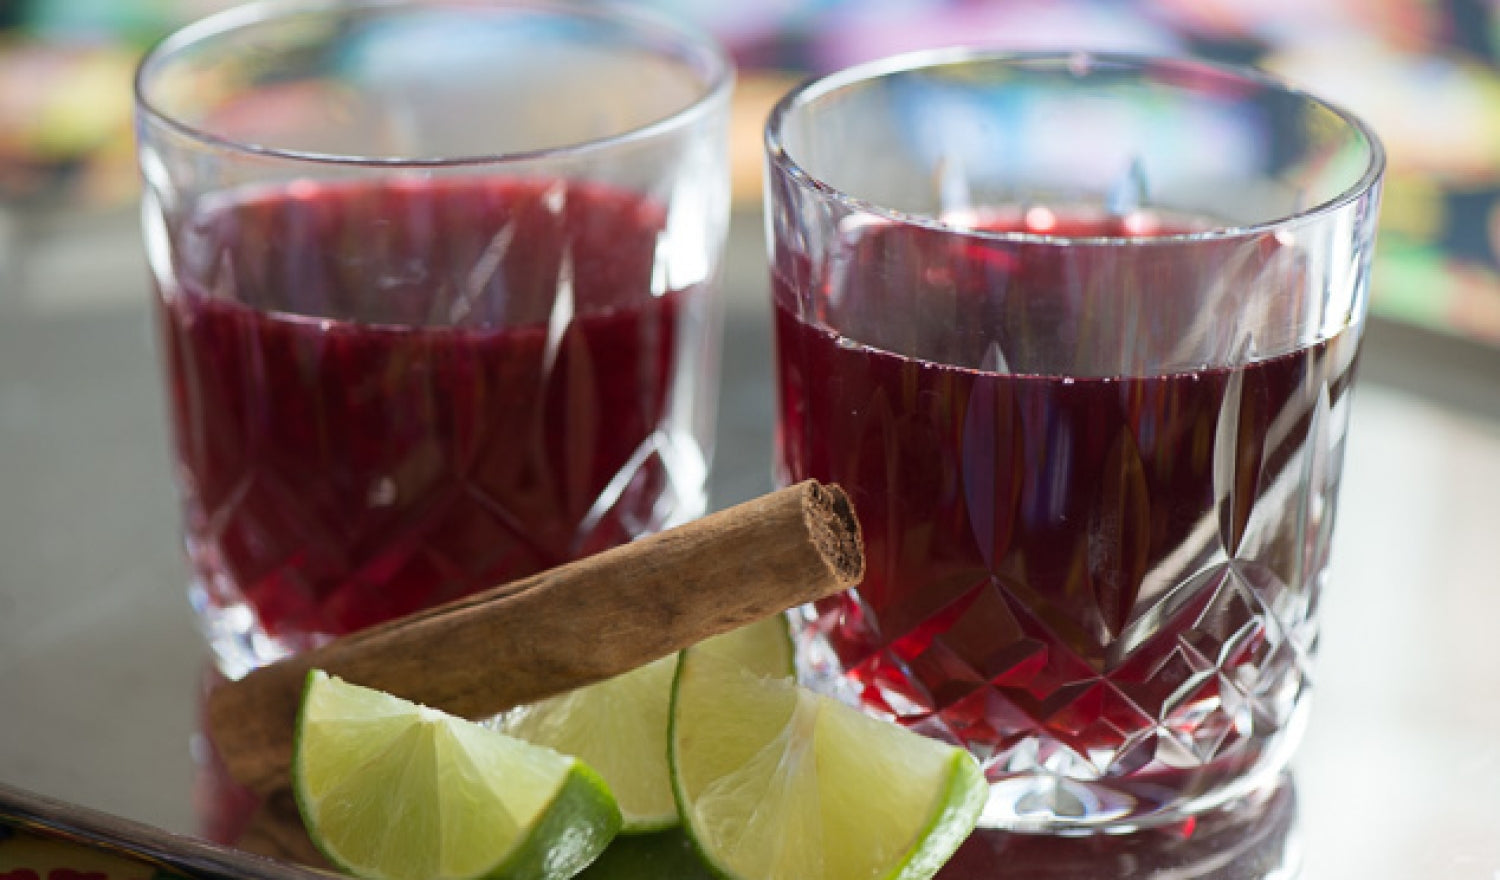 Hibiscus Flower Winter Warmer Cocktail Sous Chef Uk